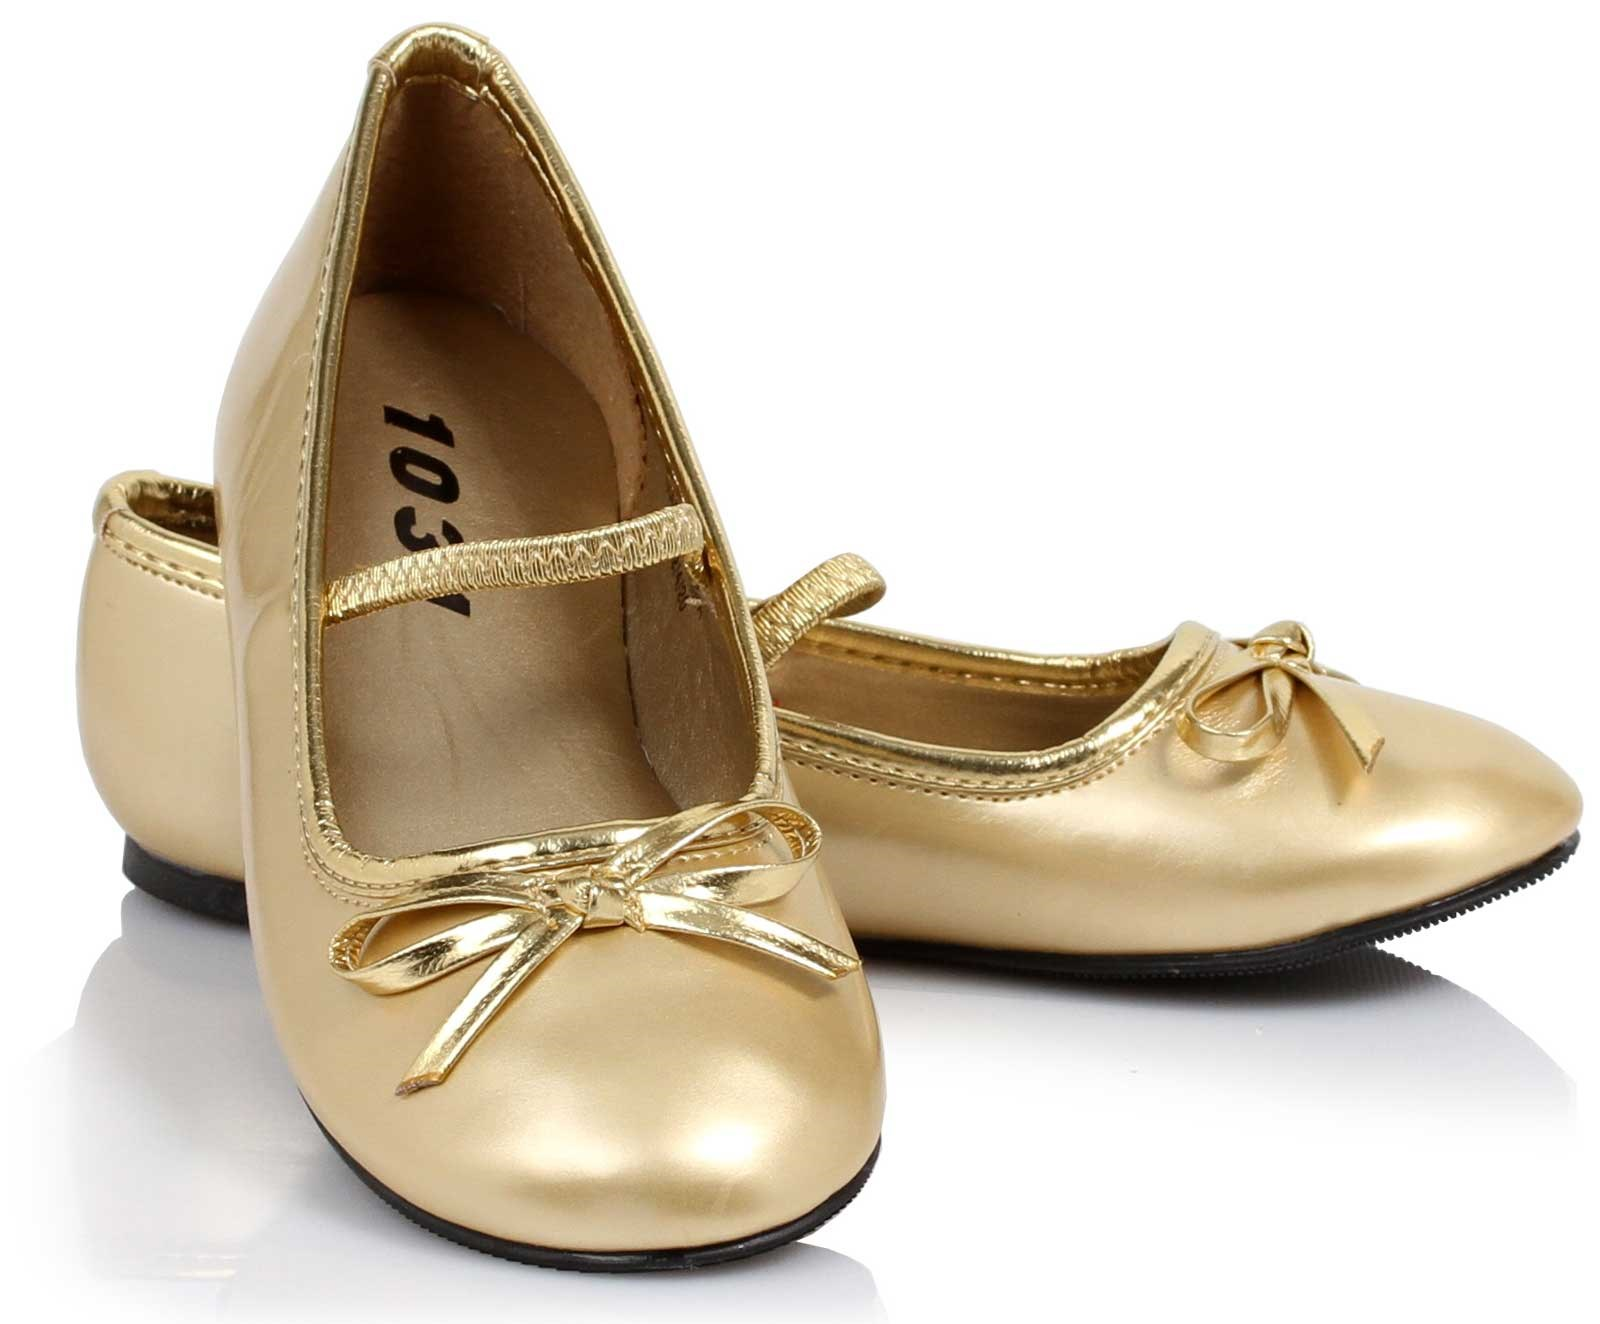 Image of Ballet Flats (Gold) Child Child 13/1